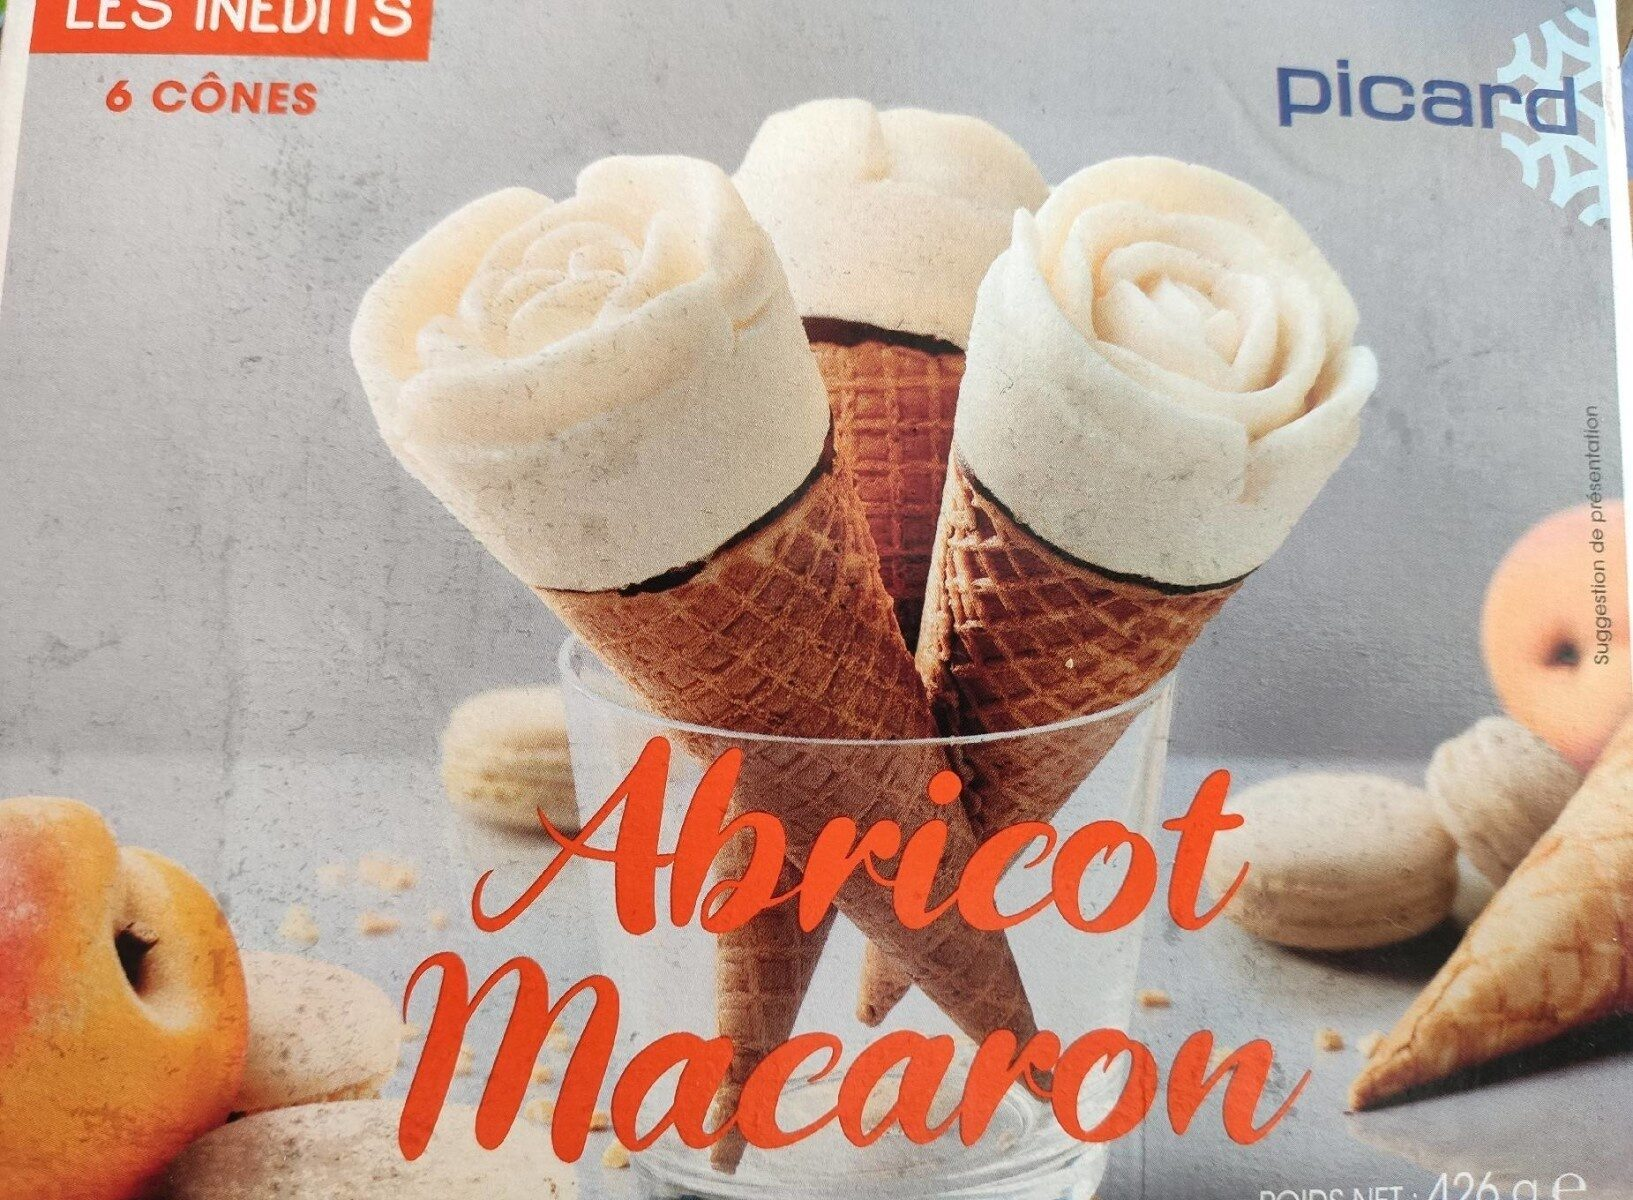 Glace Abricot Macaron - Product - fr